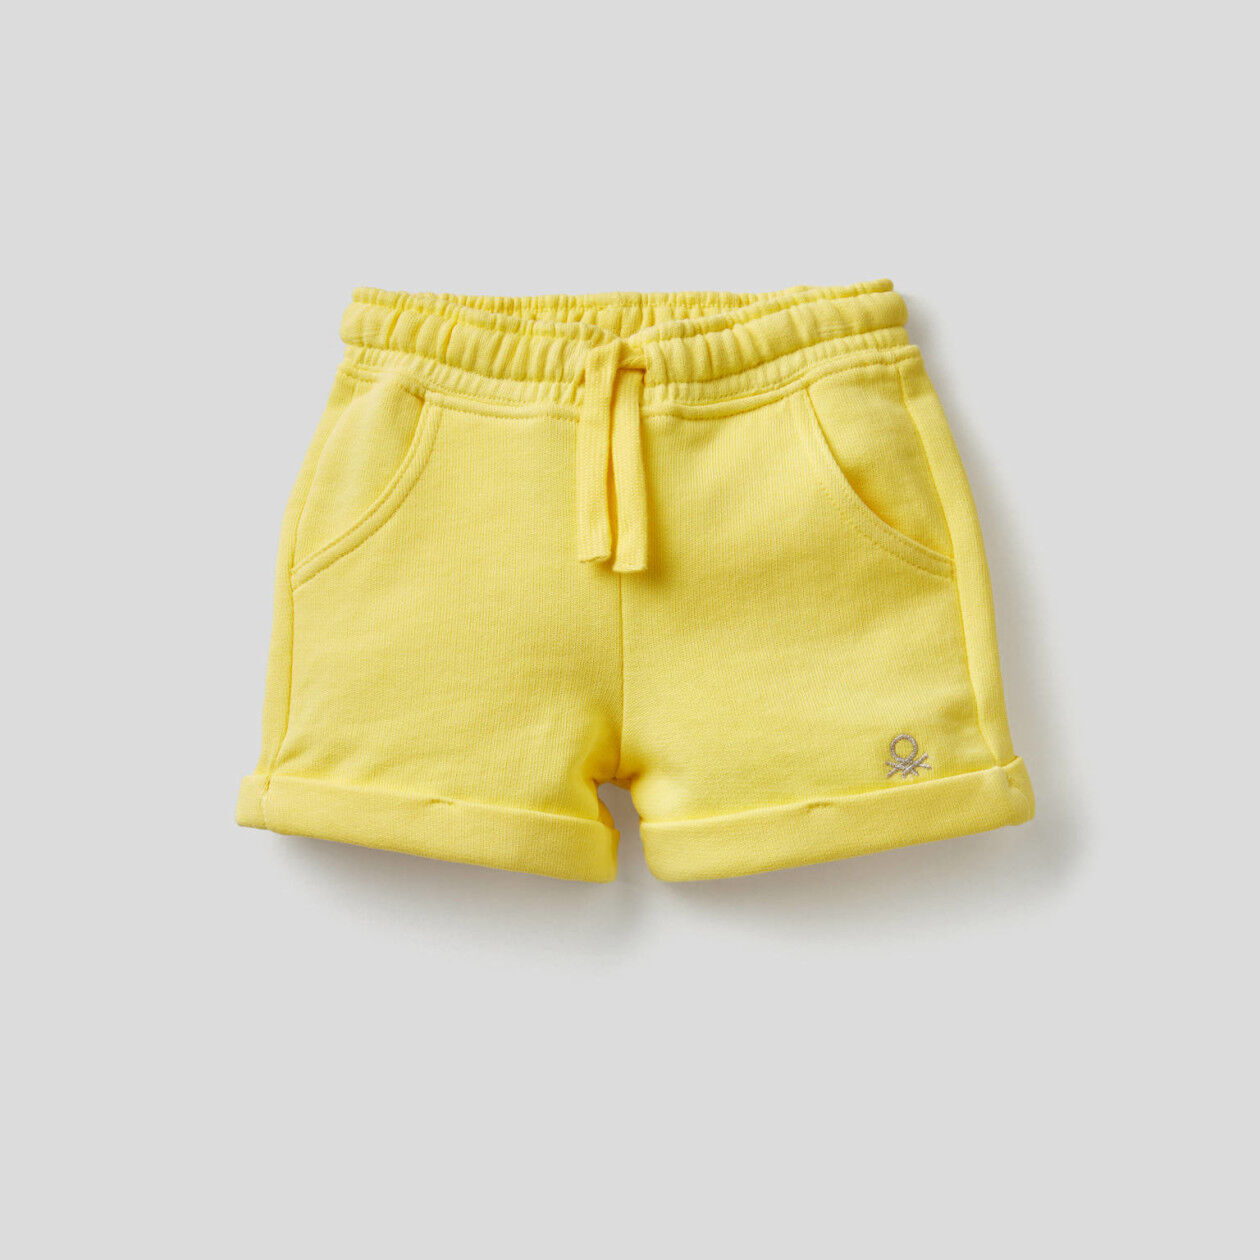 Shorts in light fleece